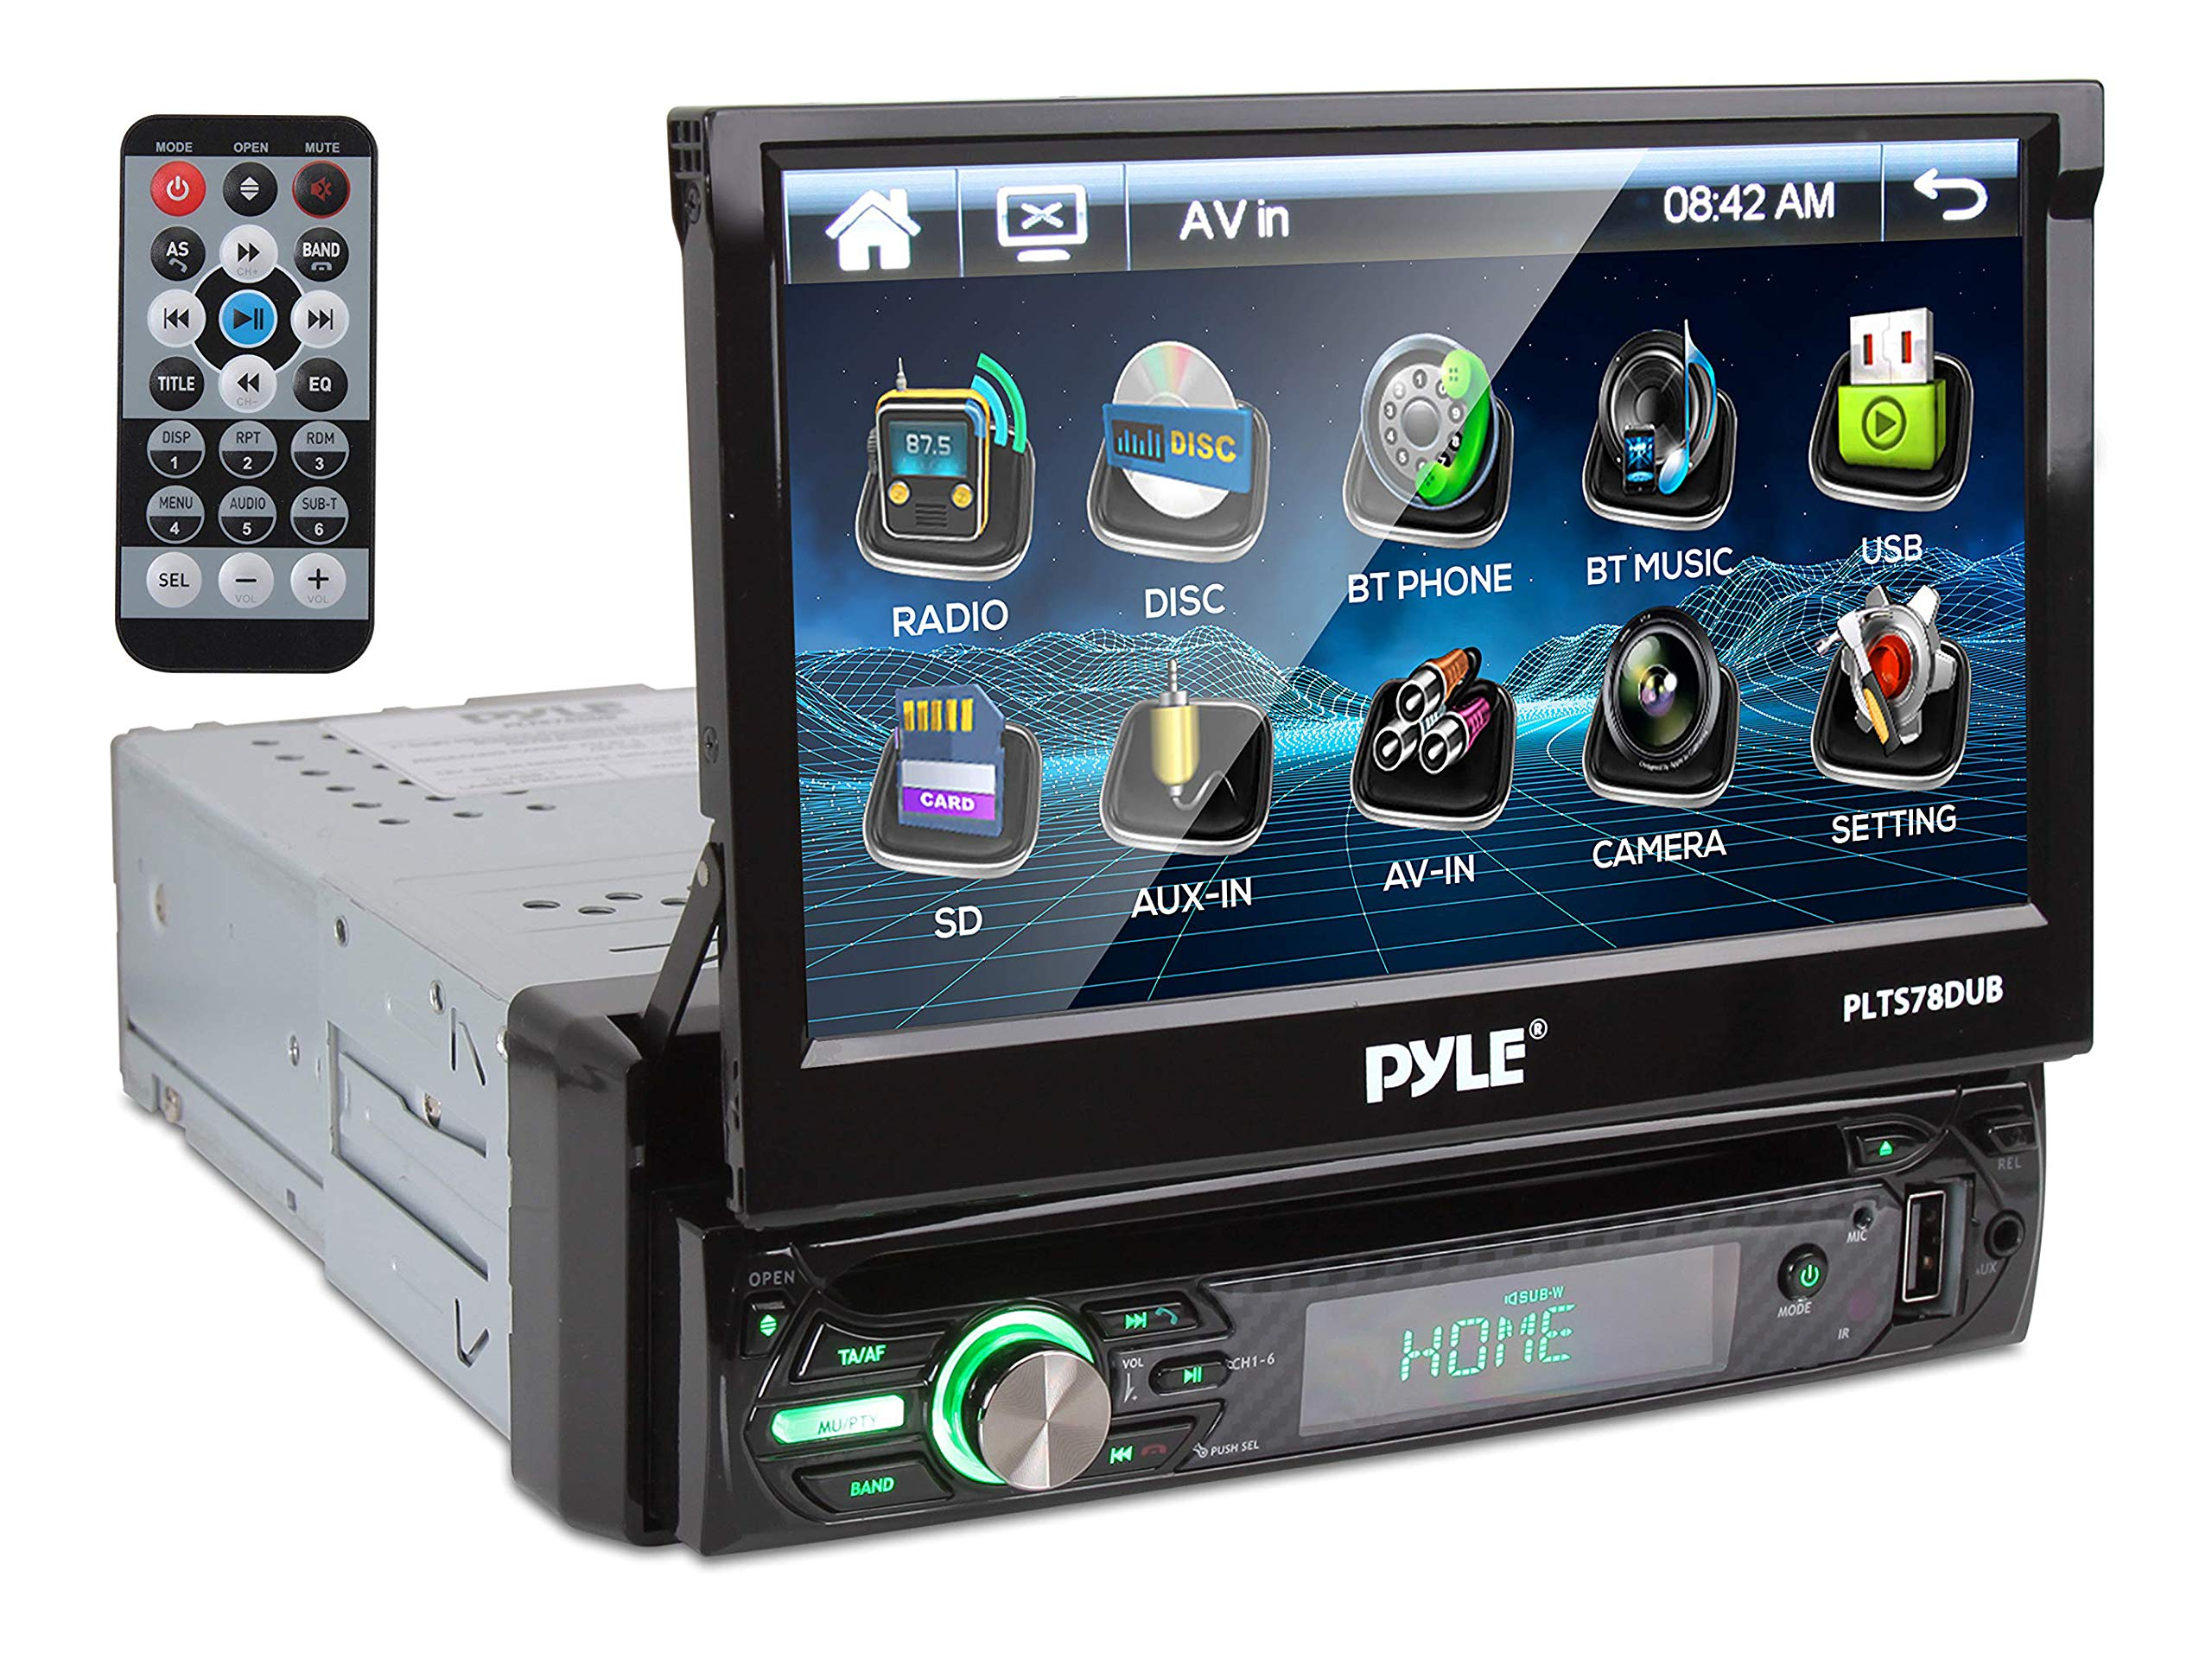 "Pyle Single DIN Head Unit Receiver - In-Dash Car Stereo with 7"" Multi-Color Touchscreen Display - Audio Video System with Bluetooth for Wireless Music Streaming & Hands-free Calling - PLTS78DUB, BLACK"